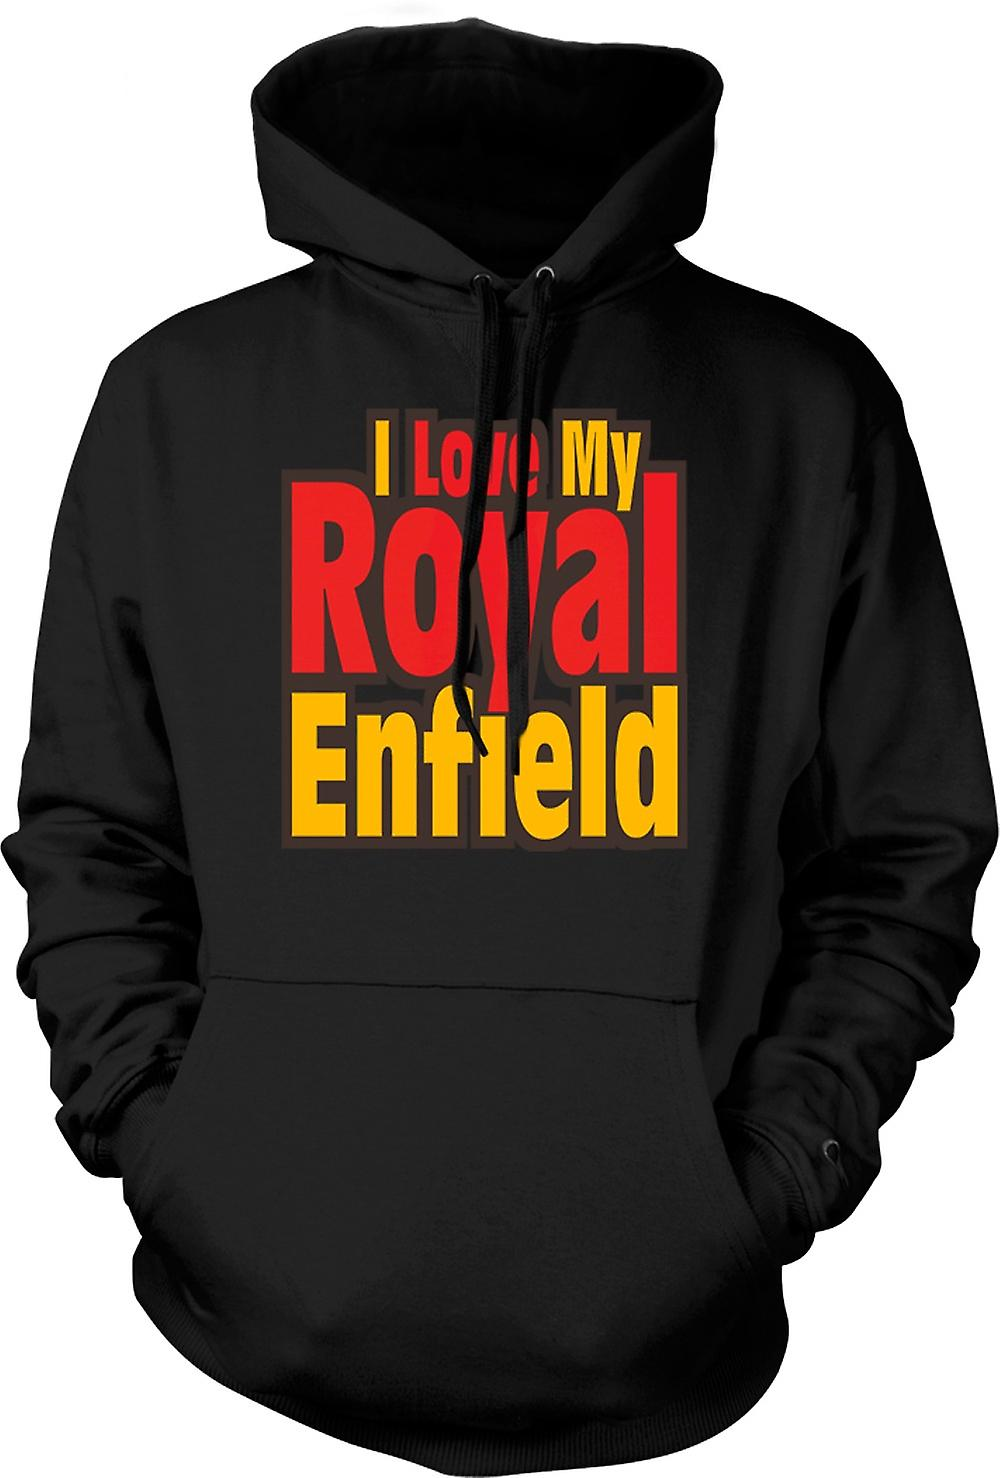 Hoodie Kids - I Love My Royal Enfield - Moto - Biker